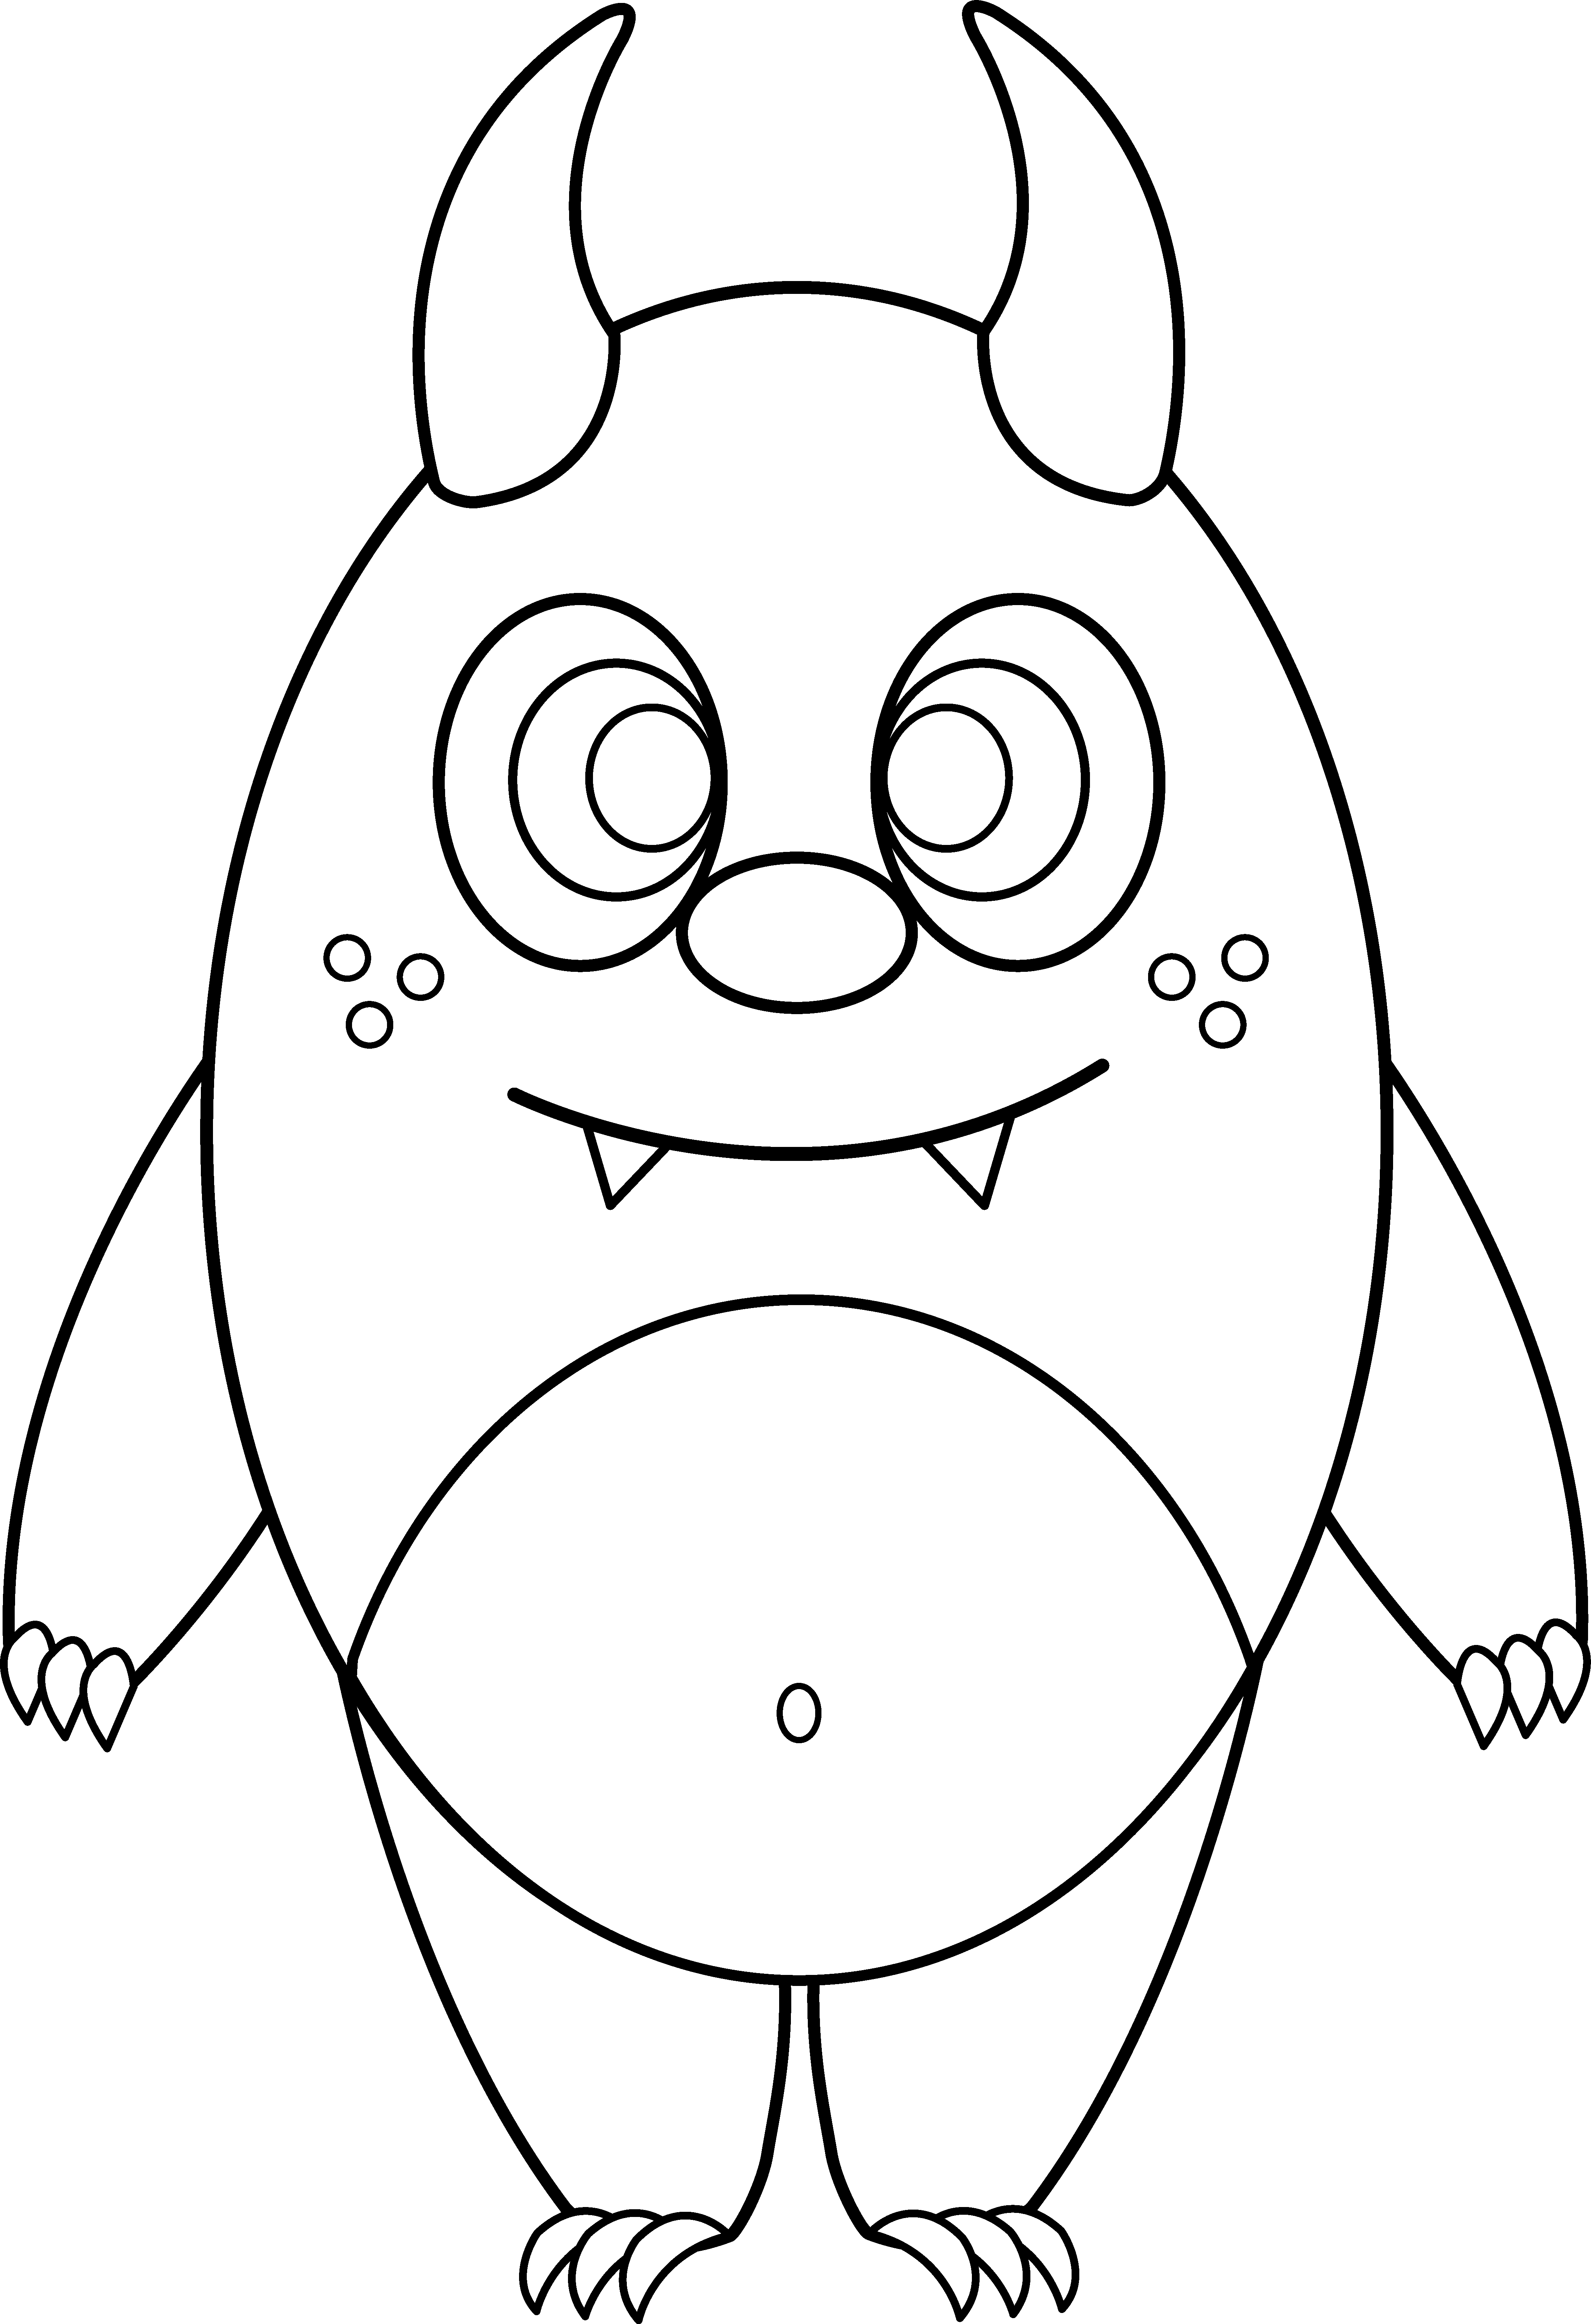 Cute monster halloween black and white clipart clipart free download Monster Line Drawing at GetDrawings.com | Free for personal use ... clipart free download